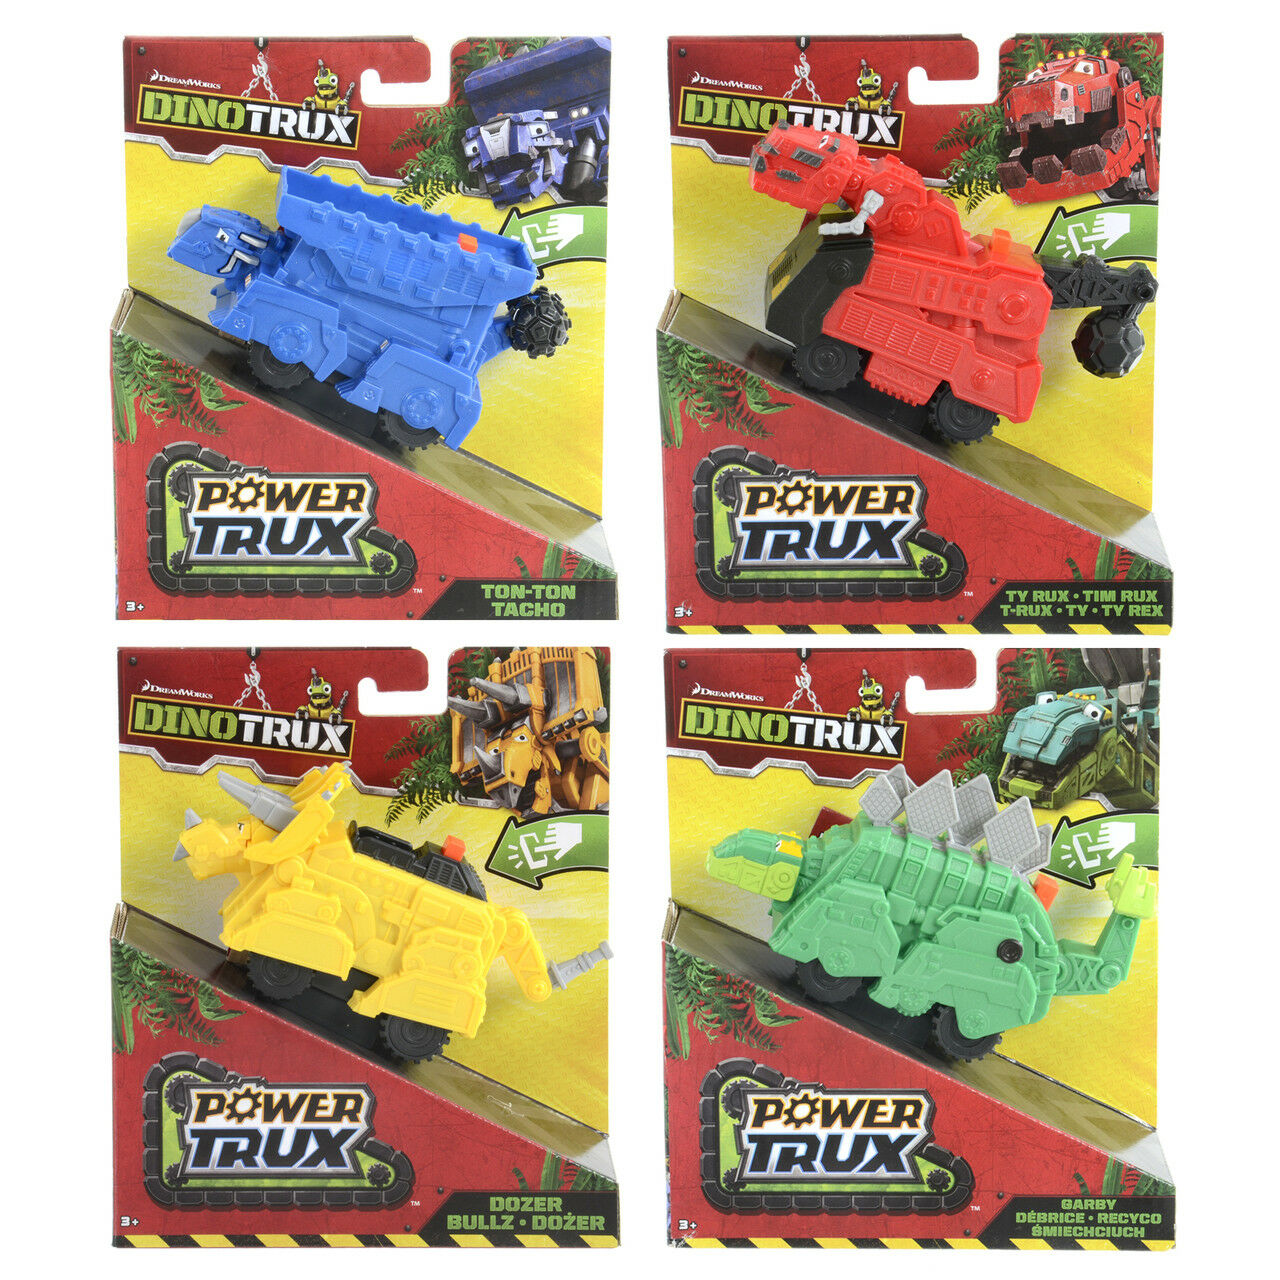 DINOTRUX DIE CAST POWER TRUX CHARACTER FIGURE VEHICLE OFFICIAL TOYS NEW GENUINE